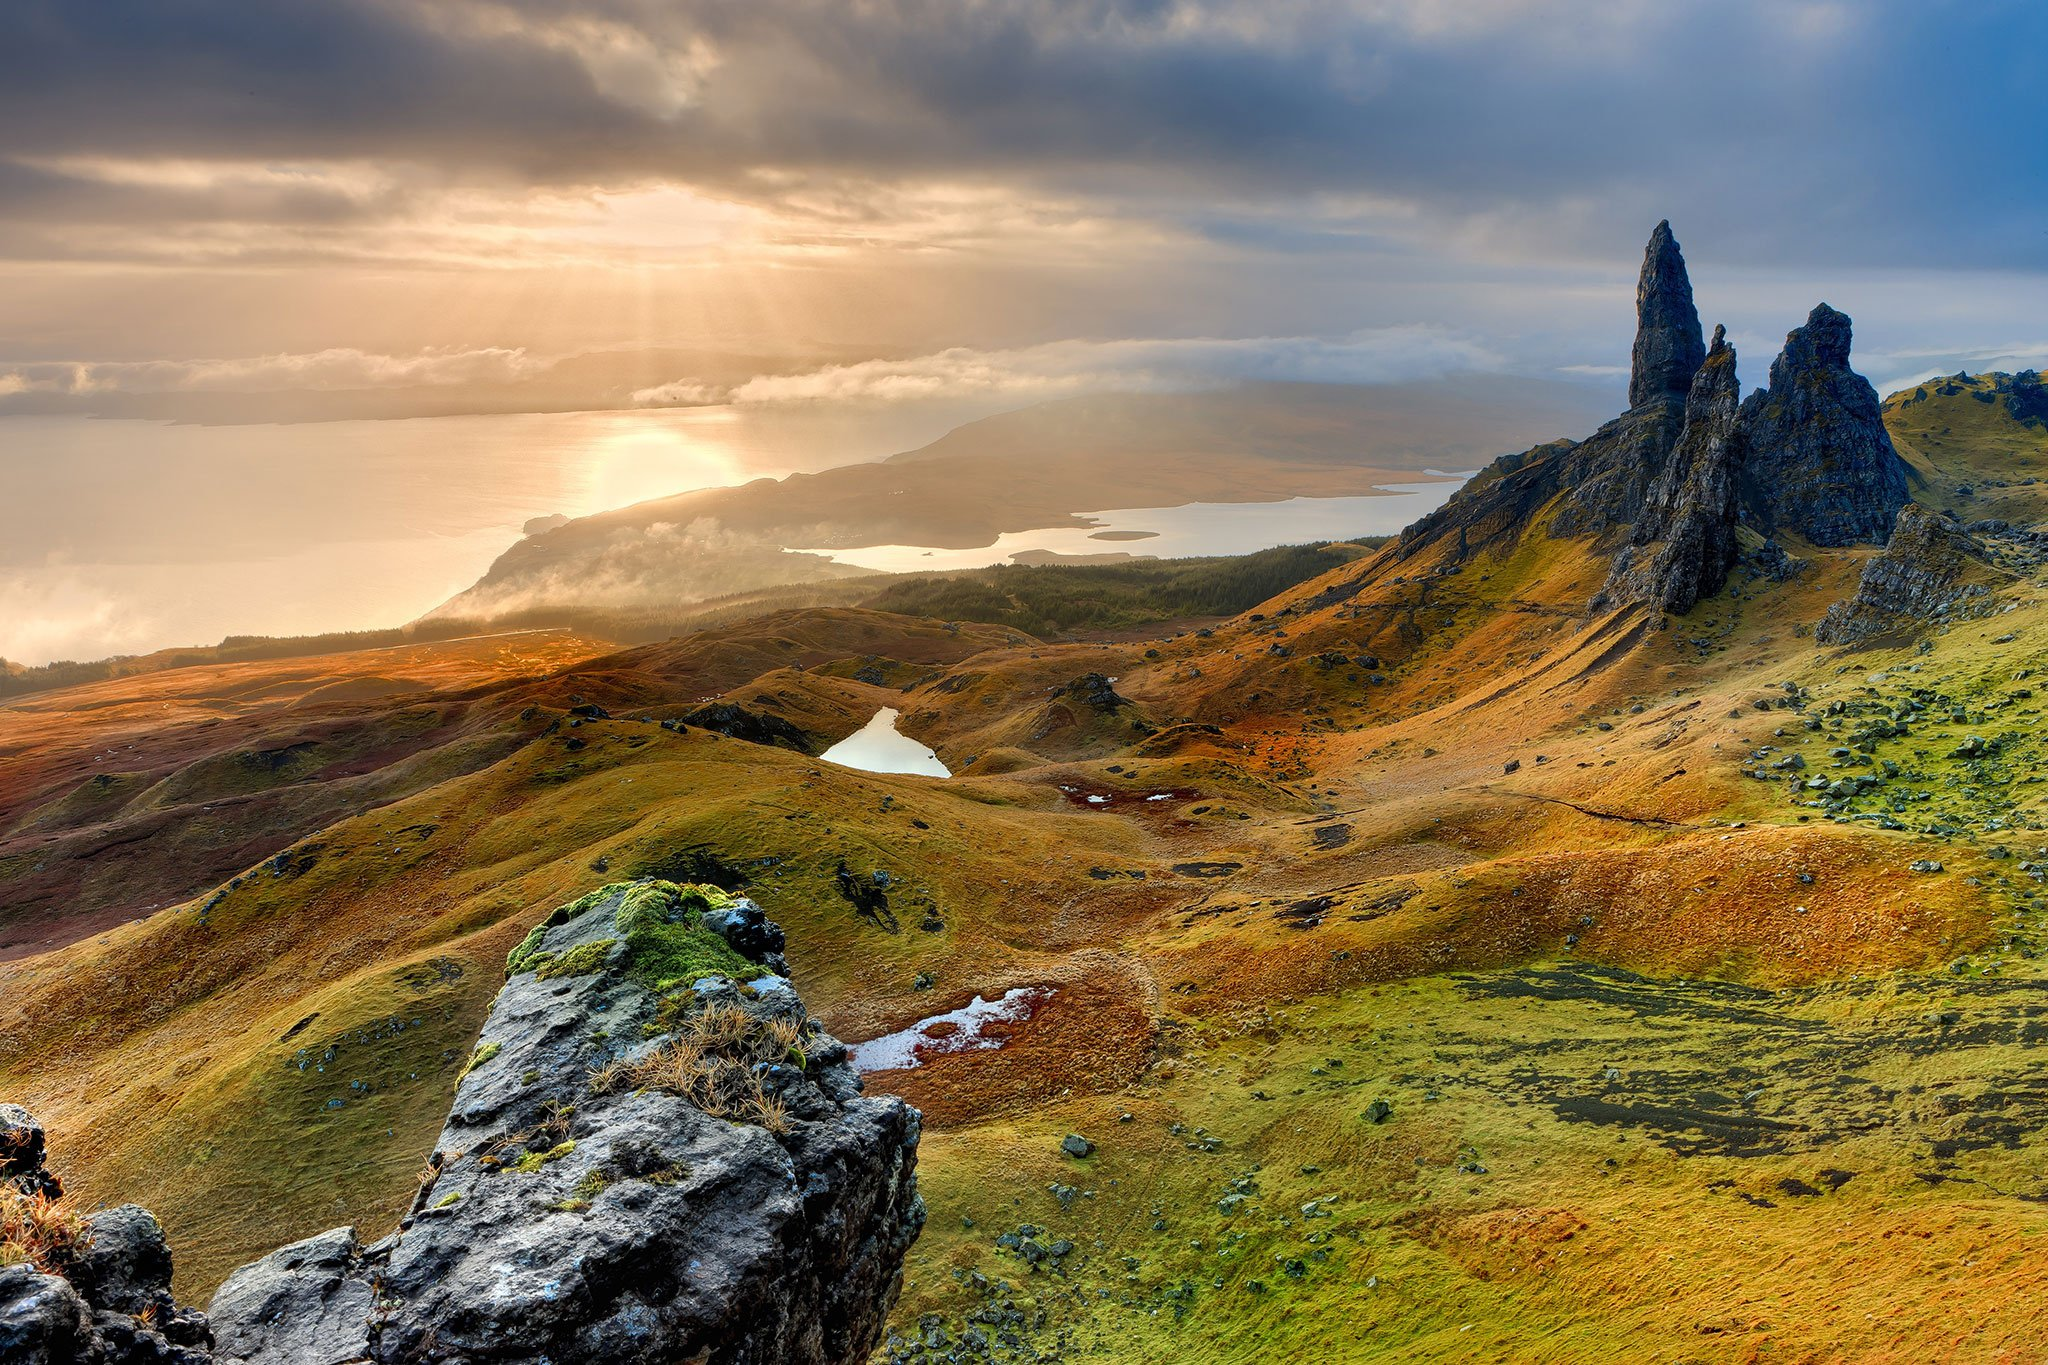 mountains_landscape_nature_Scotland_Isle_of_Skye_ocean_sea_2048x1365.jpg